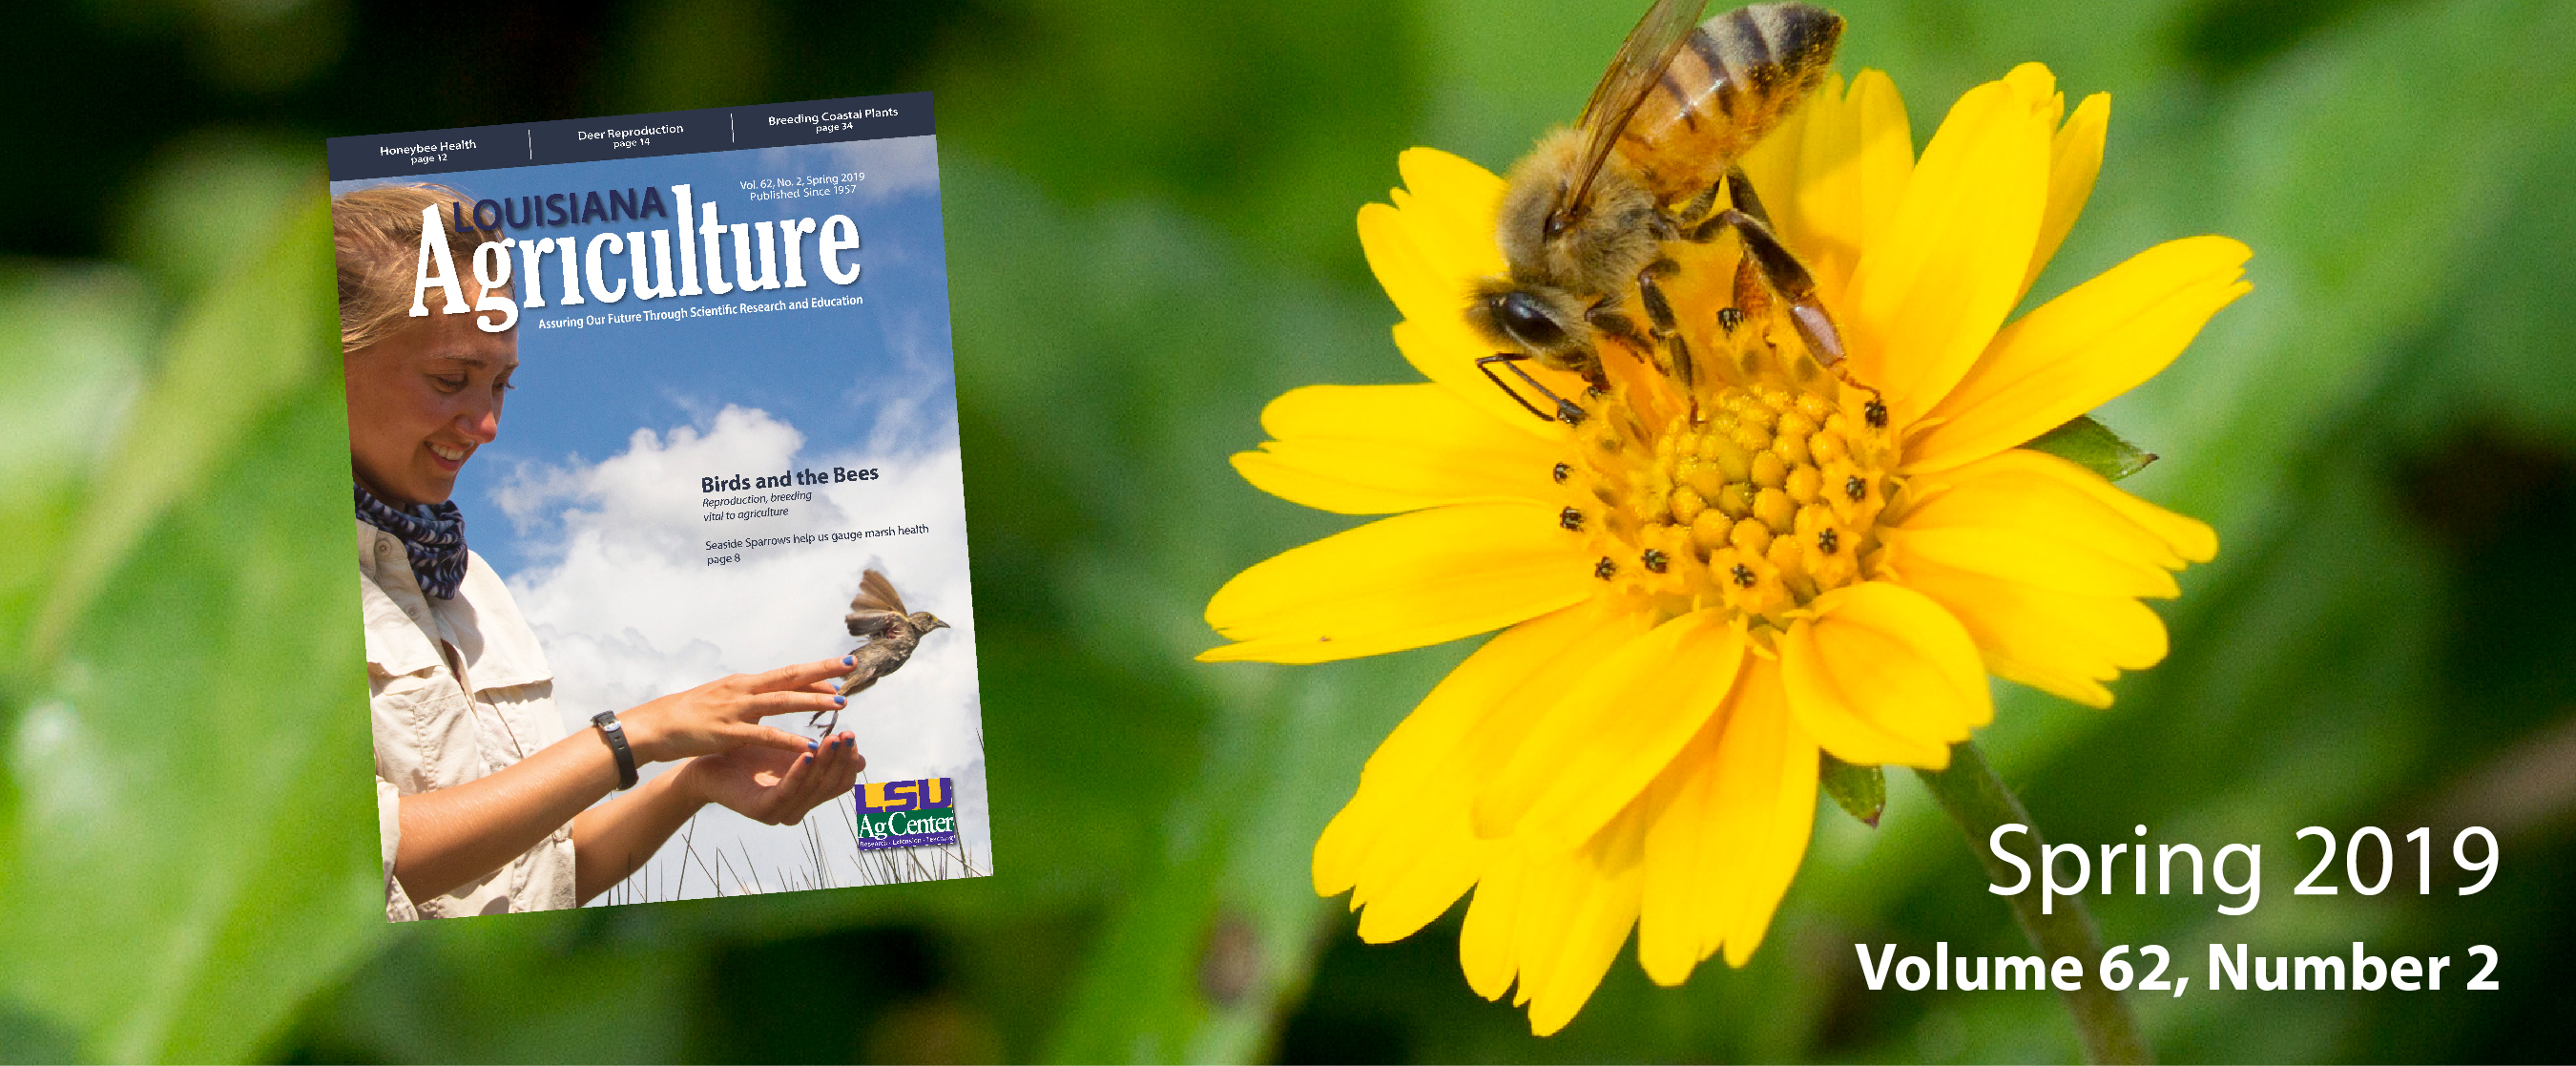 Bee on a yellow flower as well as an image of the front cover of the Louisiana Agriculture Spring 2019 issue.